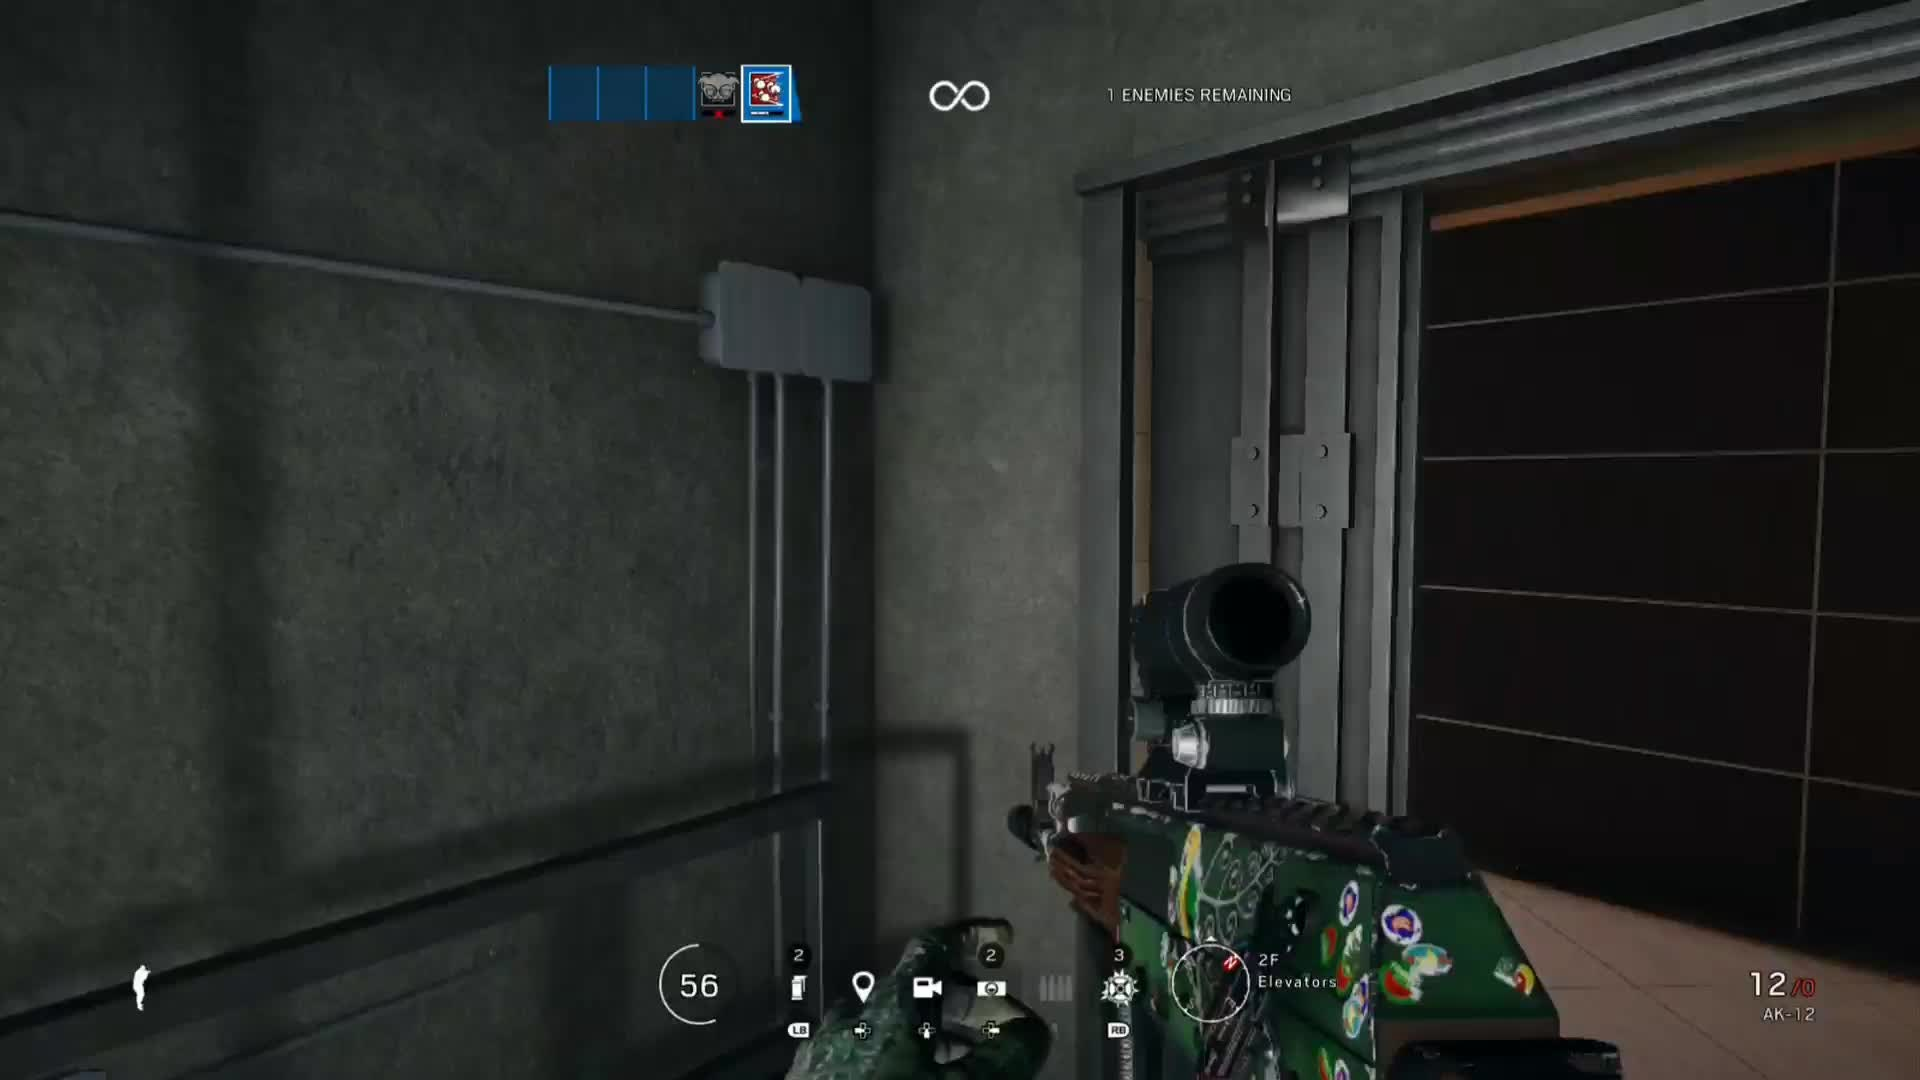 Rainbow Six: General - First dropshot on a bot at lvl 21! video cover image 1